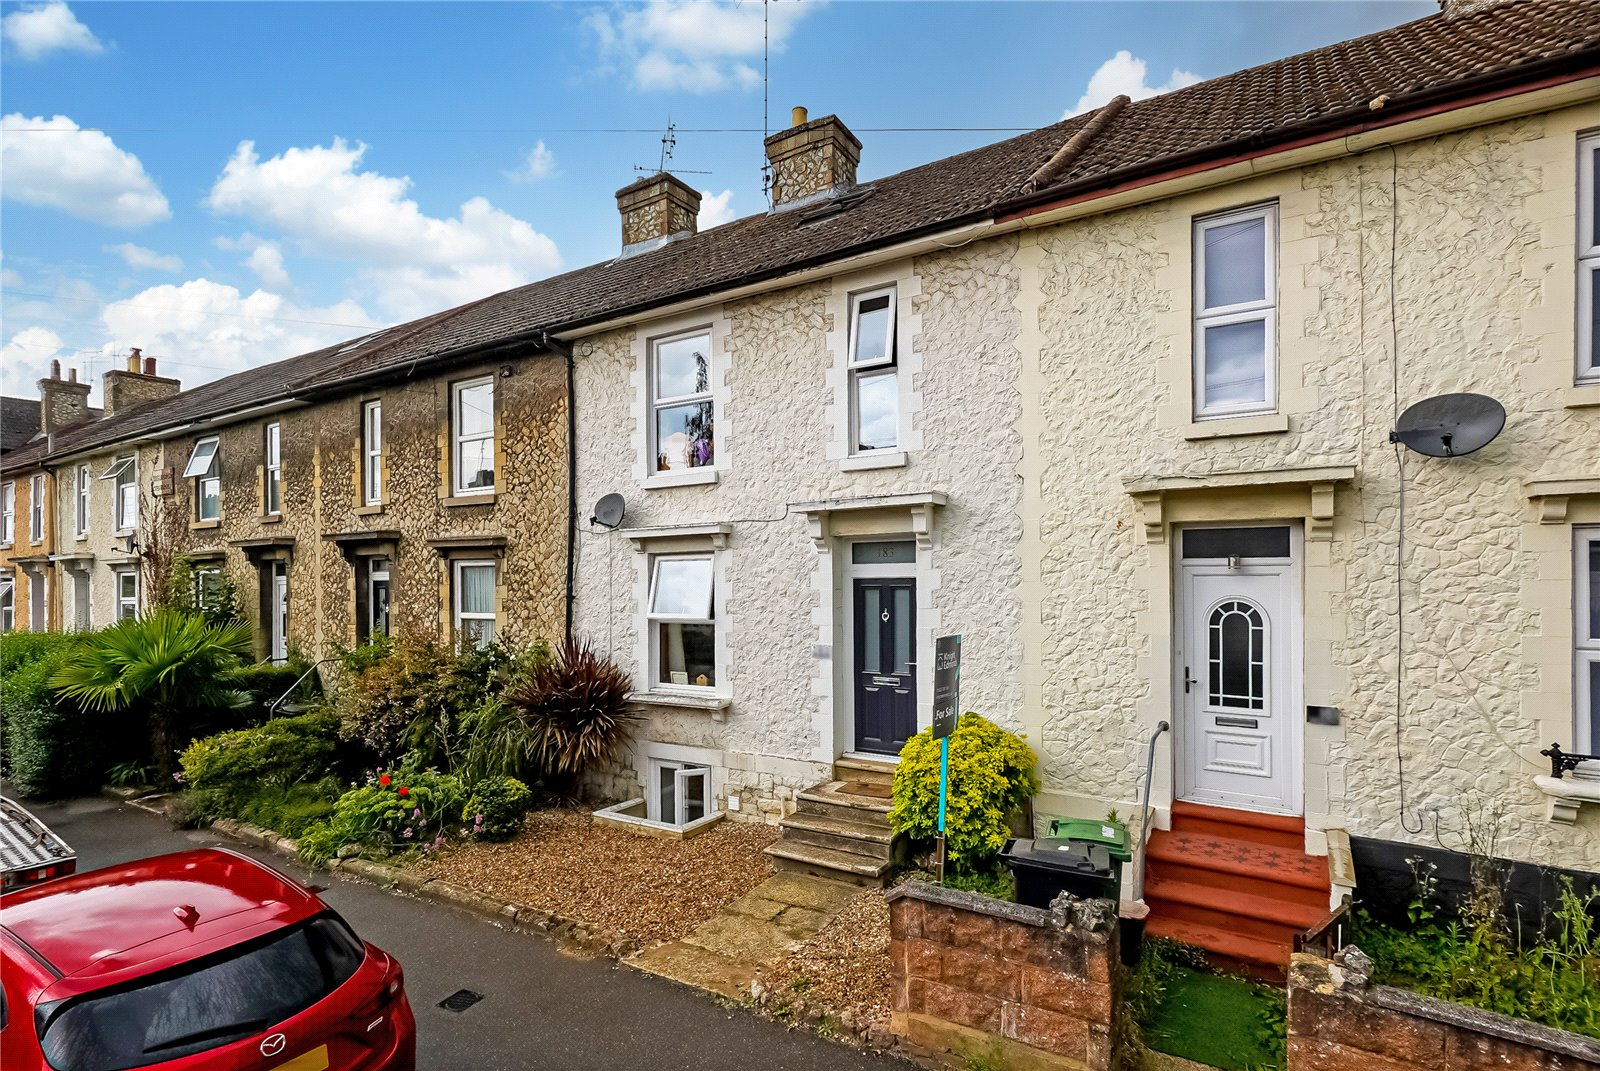 4 bed house for sale in Upper Fant Road, Maidstone  - Property Image 1